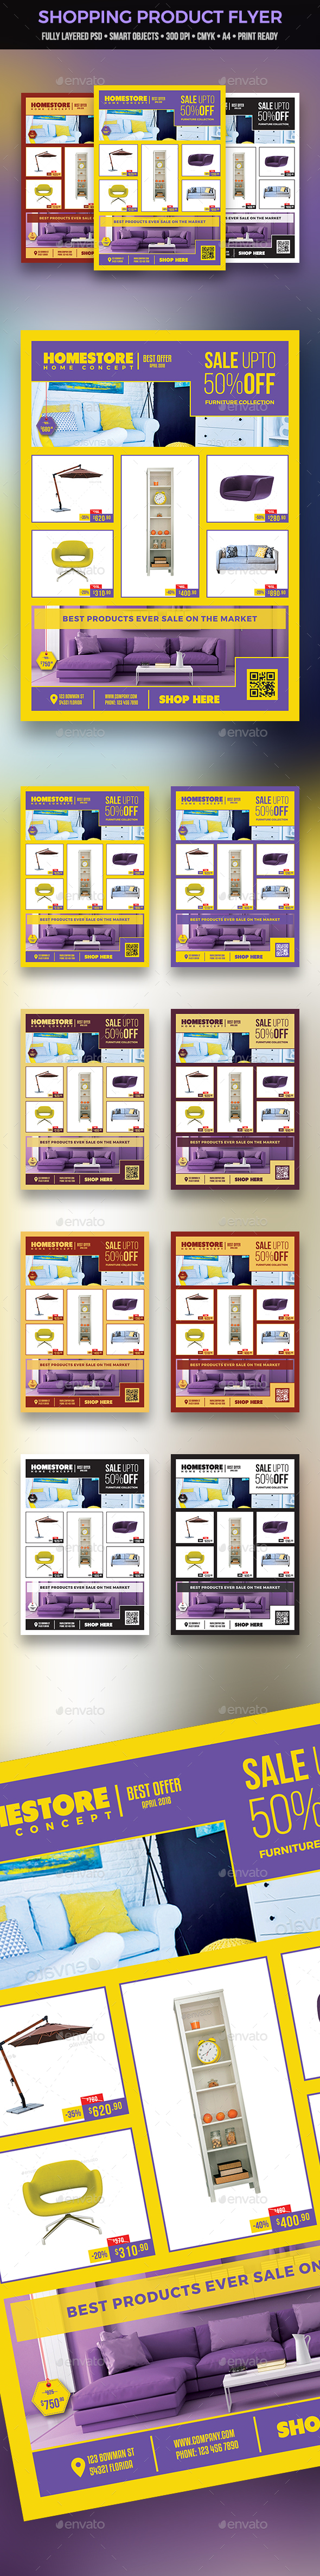 GraphicRiver Shopping Product Flyer 21136764